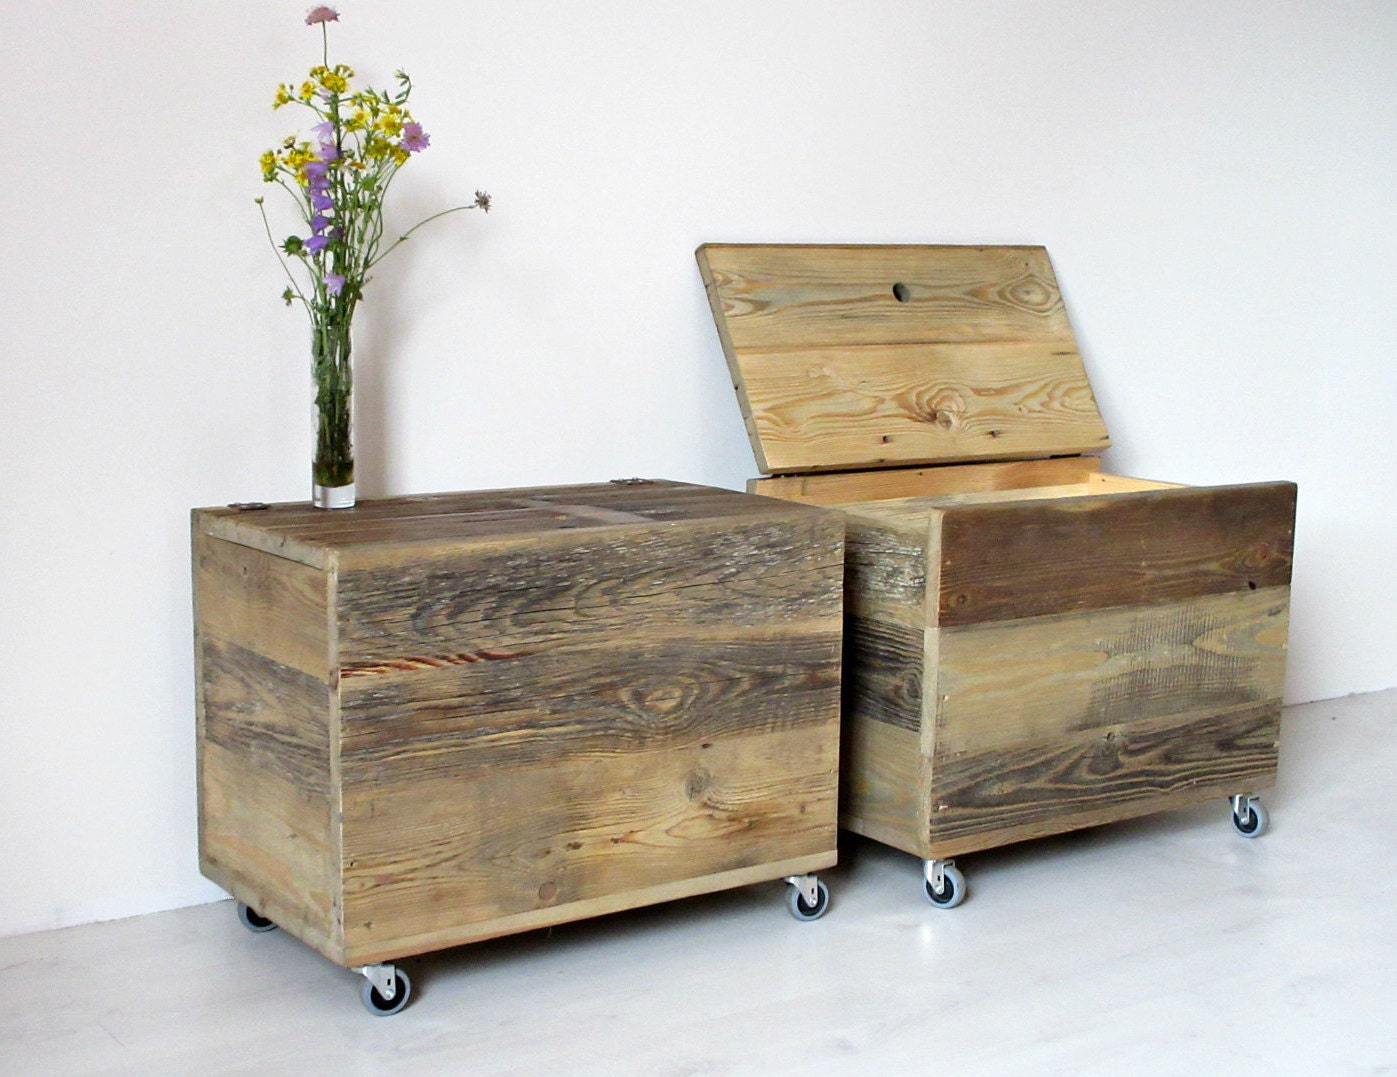 Wooden storage box large organiser chest side table